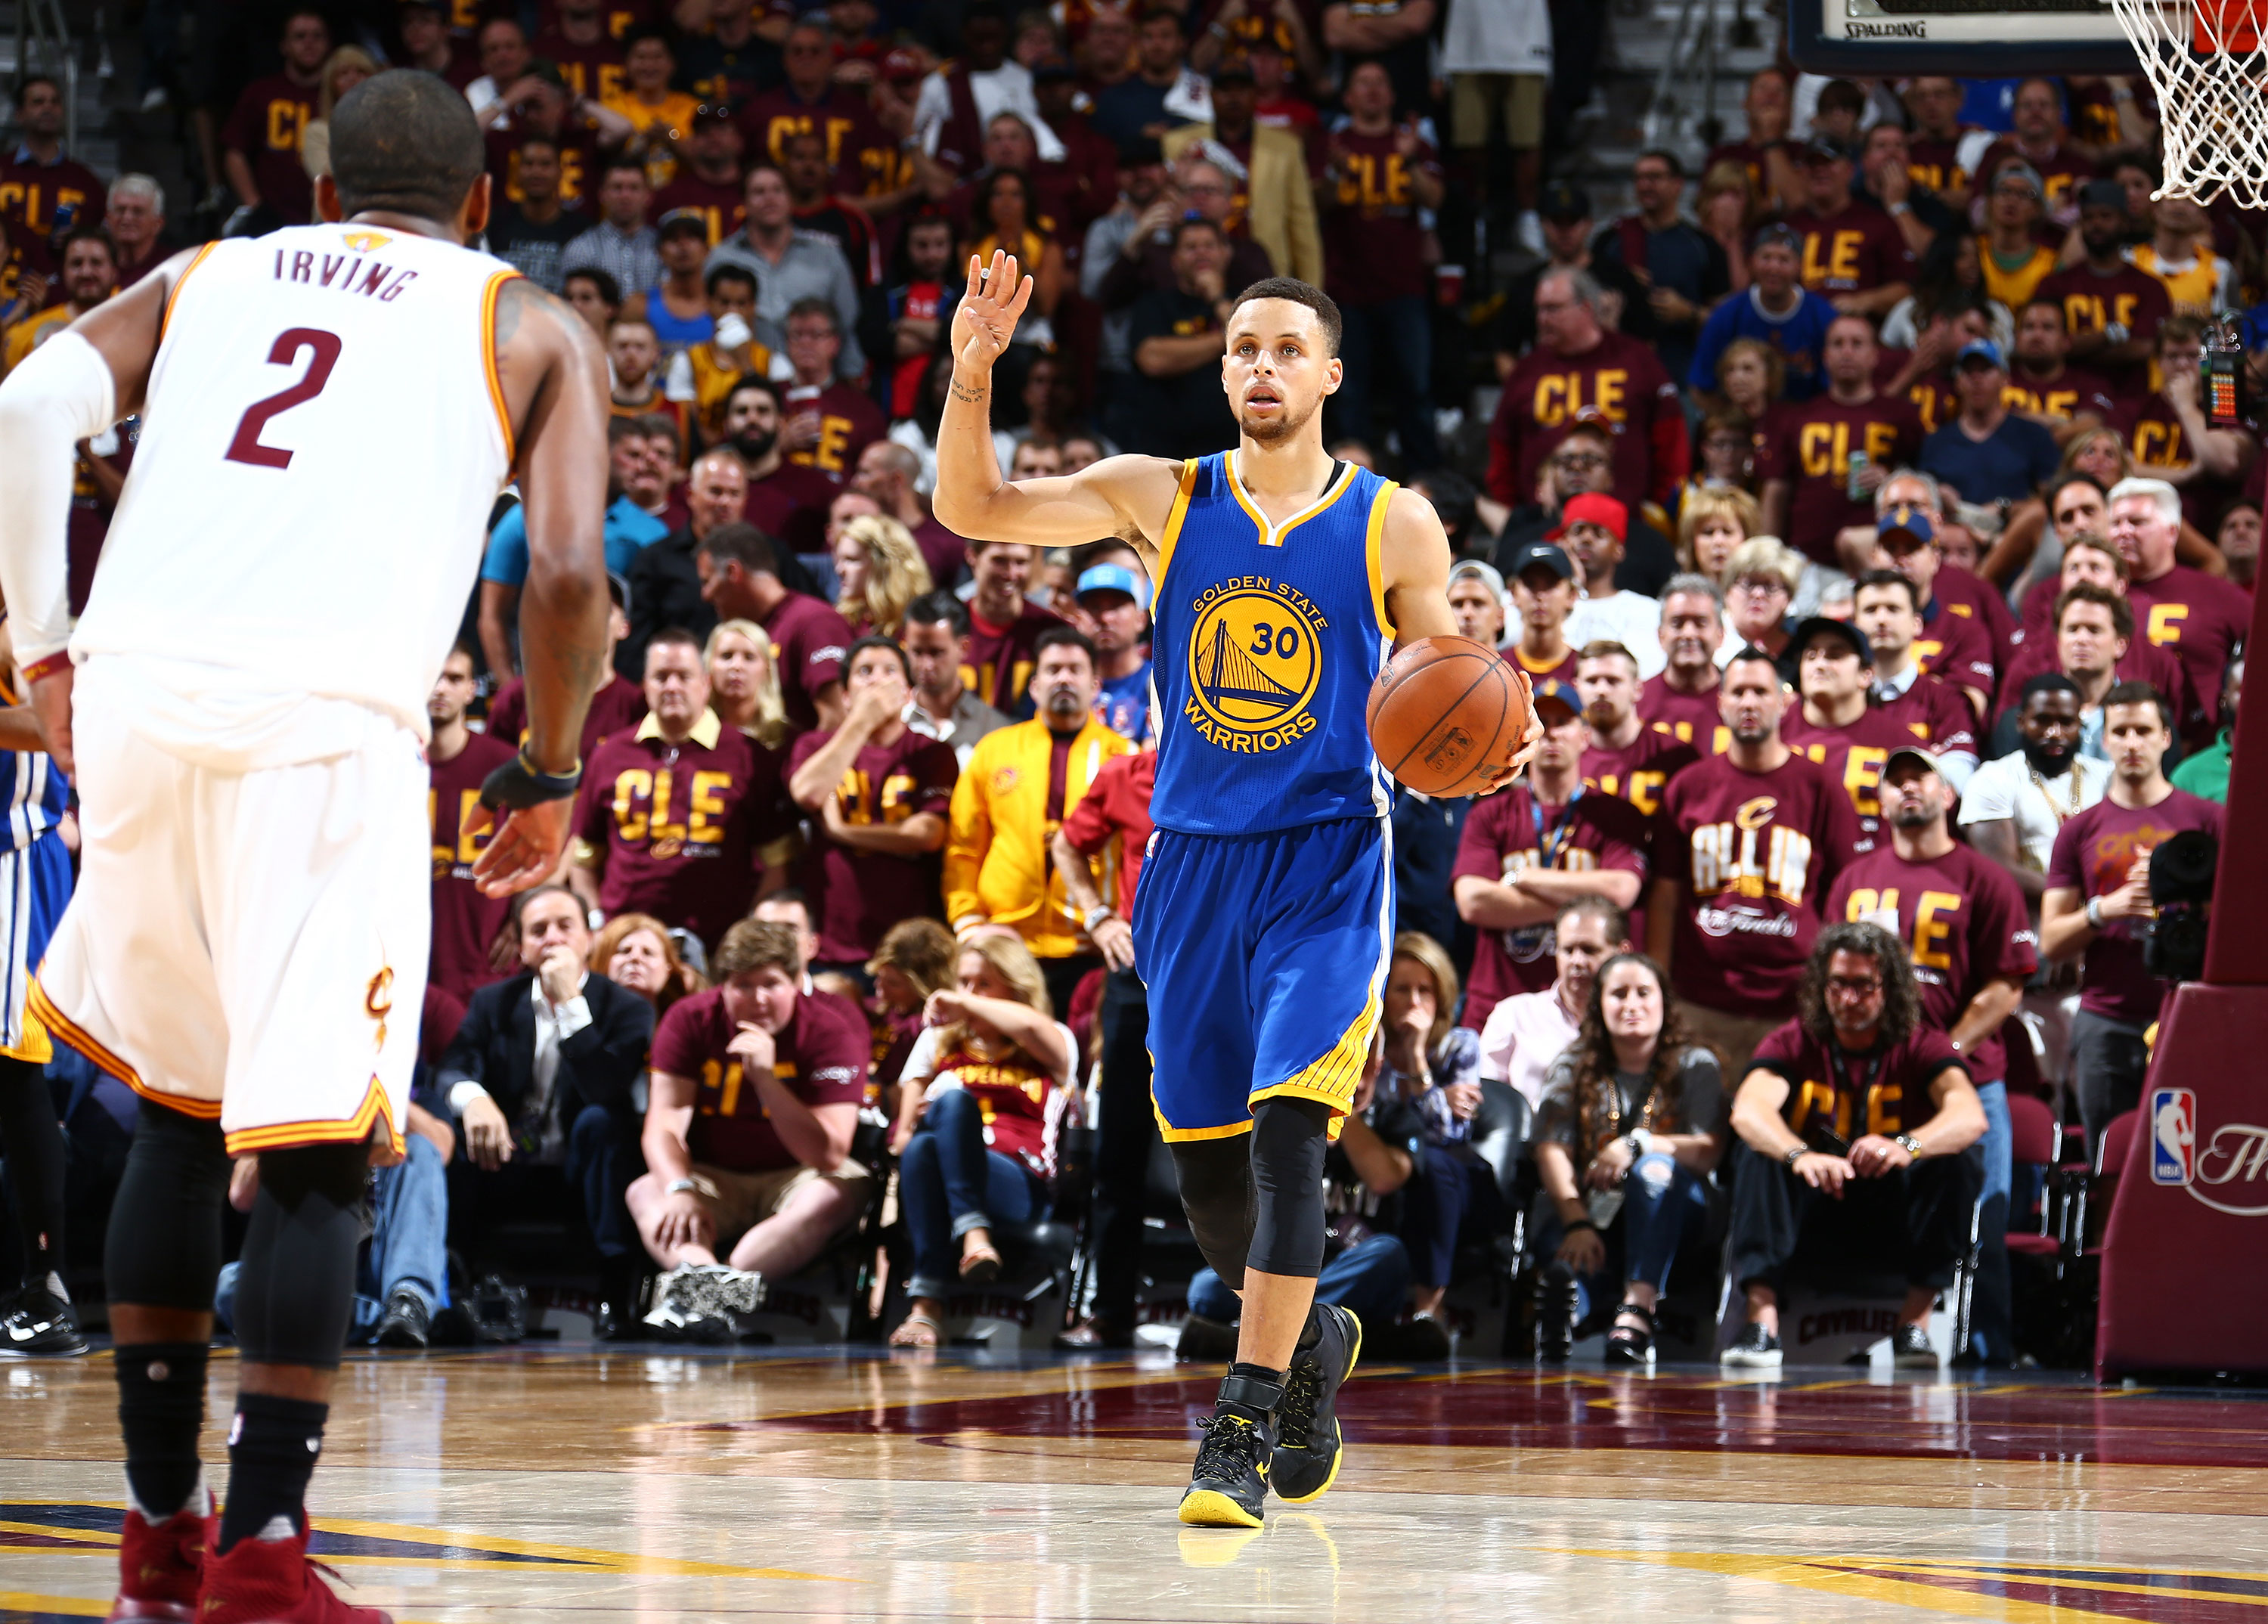 62103fca3fd8 NBA Finals  Steph Curry Leads Warriors to Stomp Cavs and Win Game 4 ...